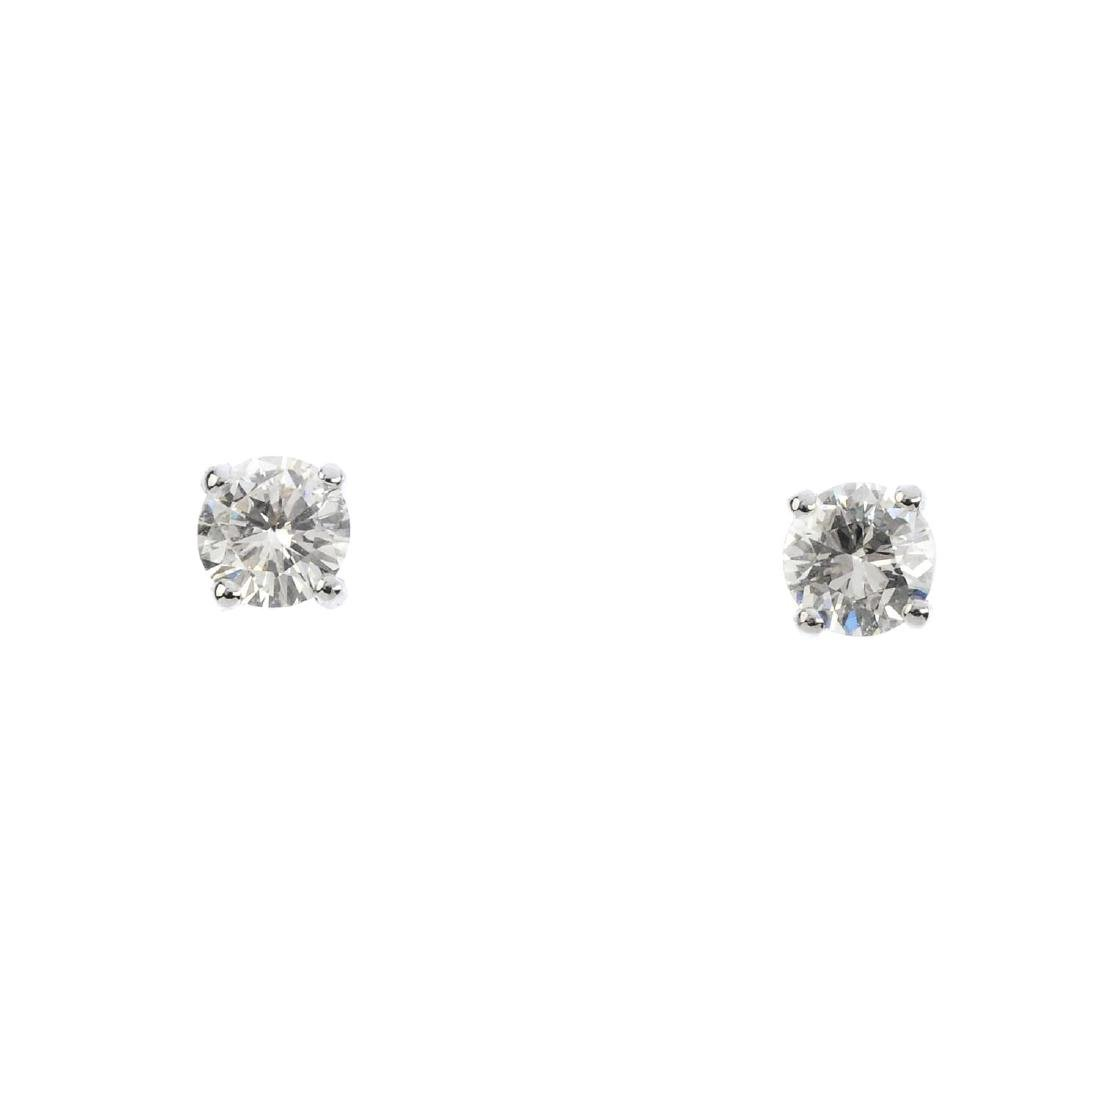 A pair of diamond stud earrings. Each designed as a